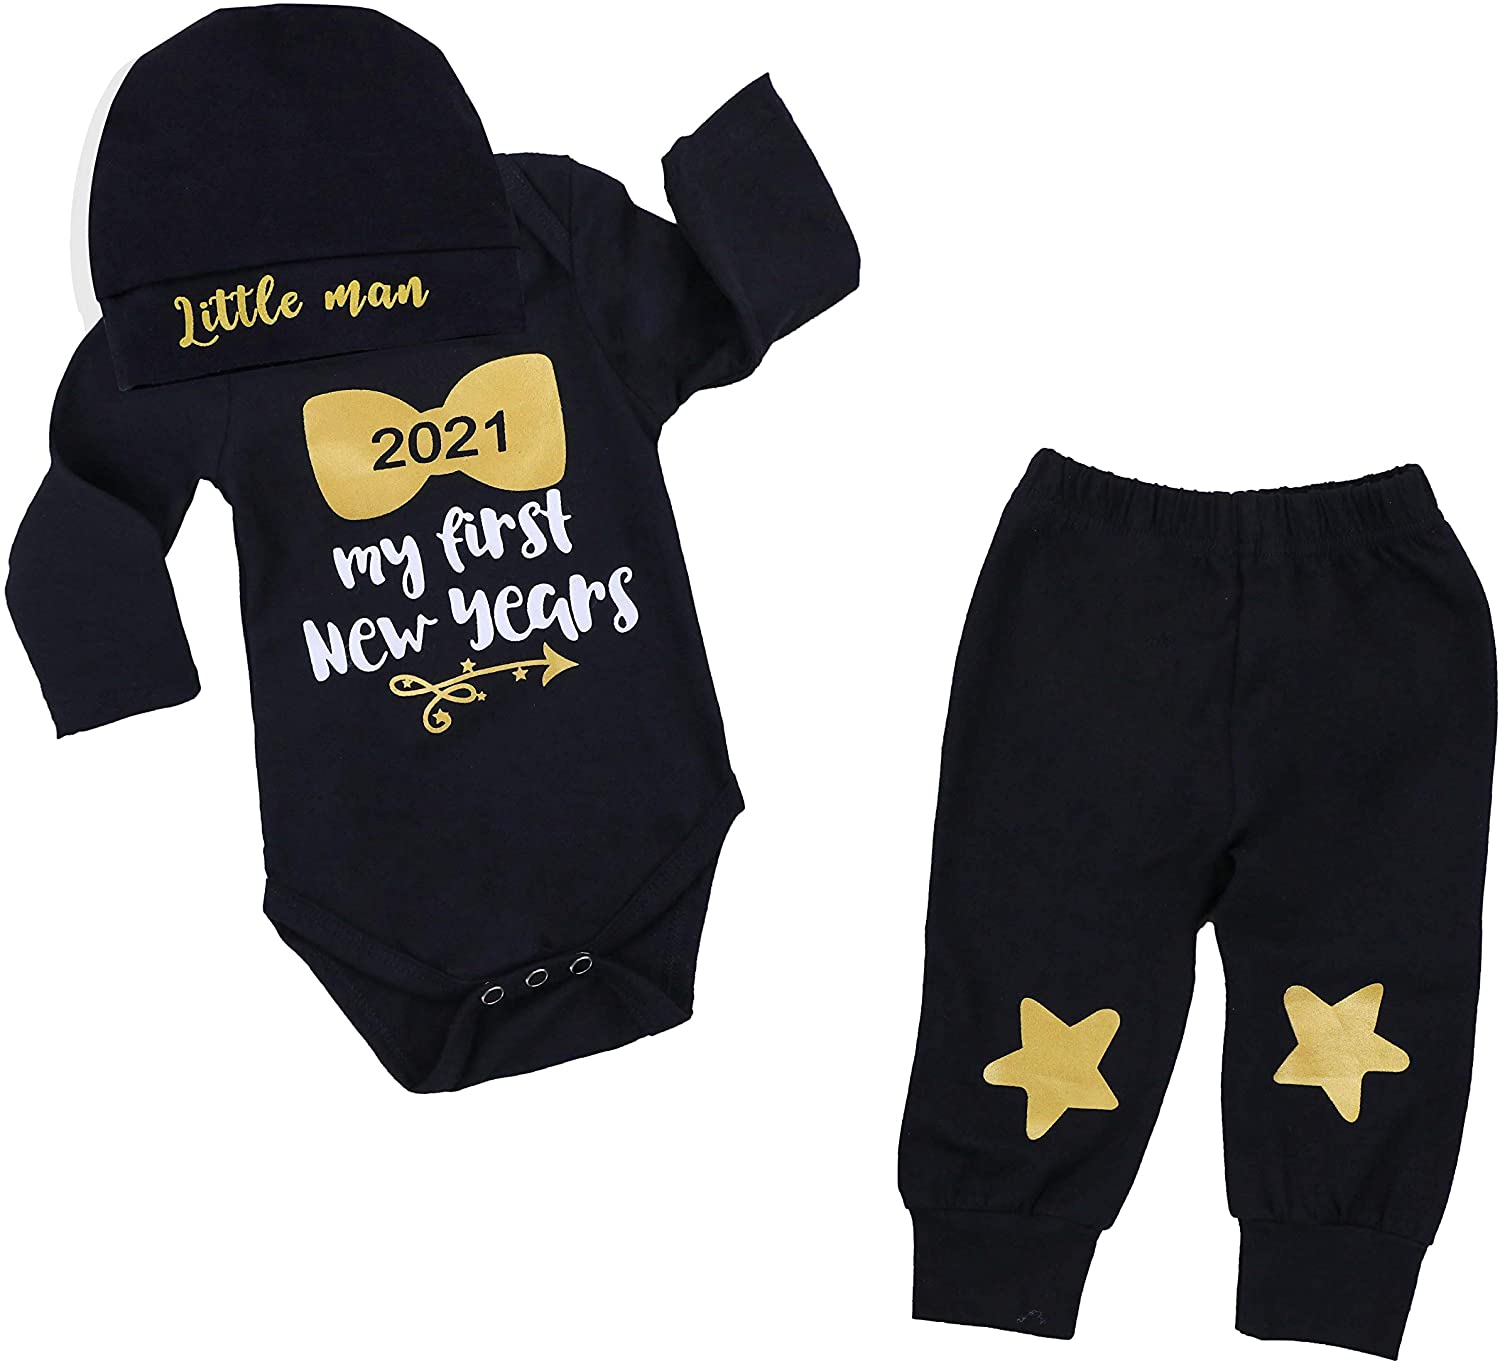 Newborn Baby Boy 1st New Year Clothes 2021 My First New Year Romper + Cute Star Pants + Little Man Hats 3PCS Outfit Set